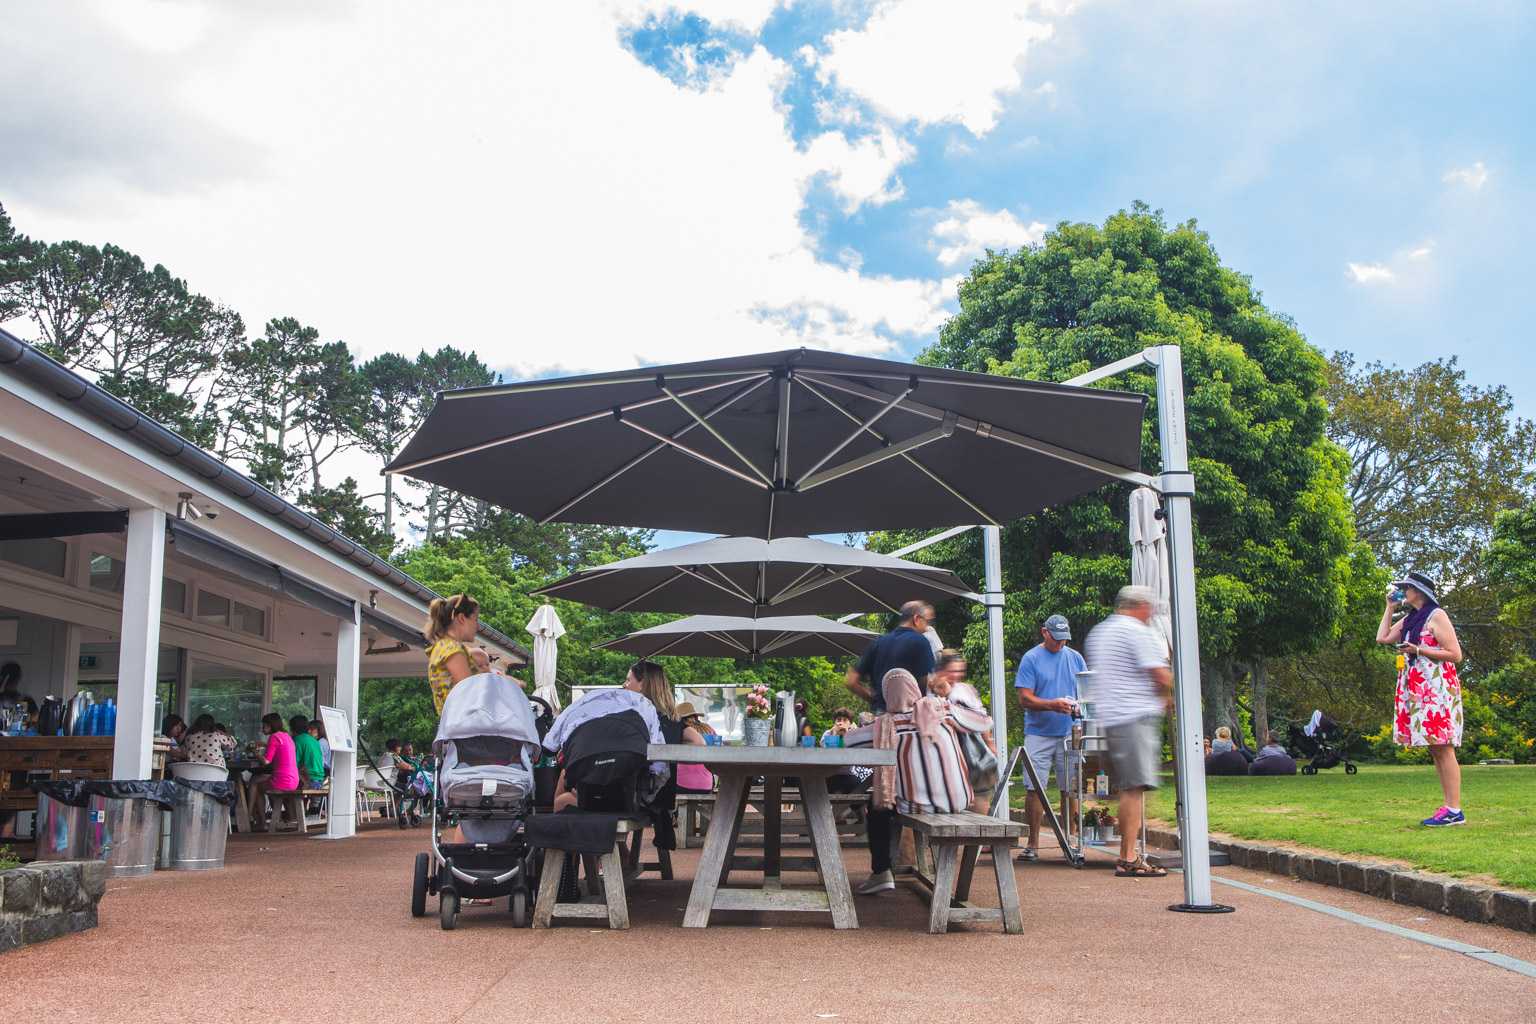 Cornwall Park Cafe Riviera Cantilever Umbrella